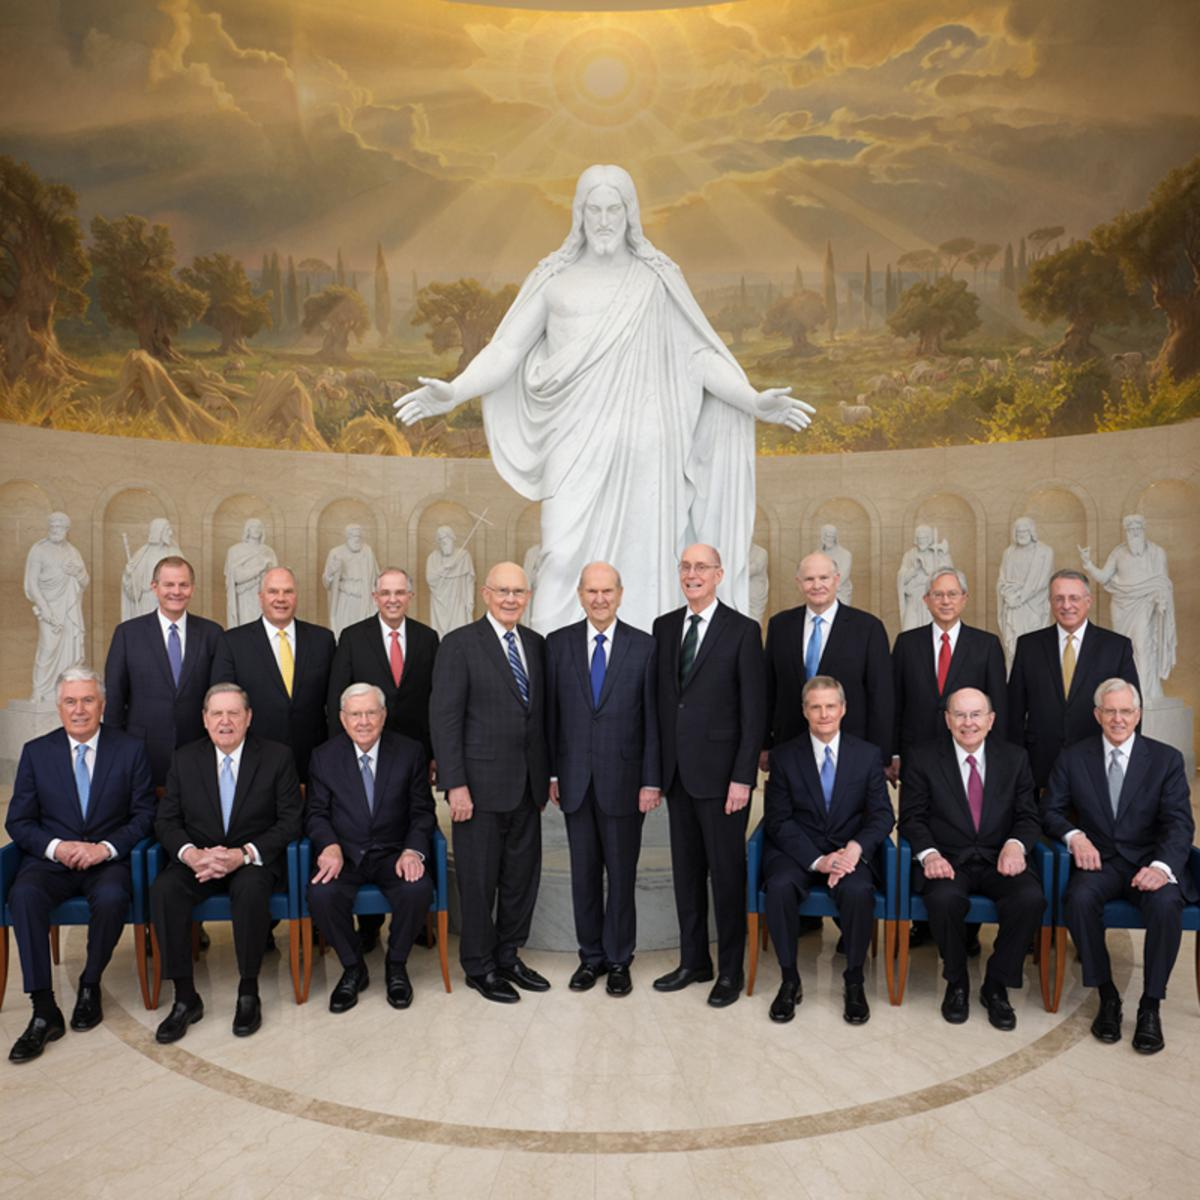 The First Presidency and Quorum of the Twelve Apostles